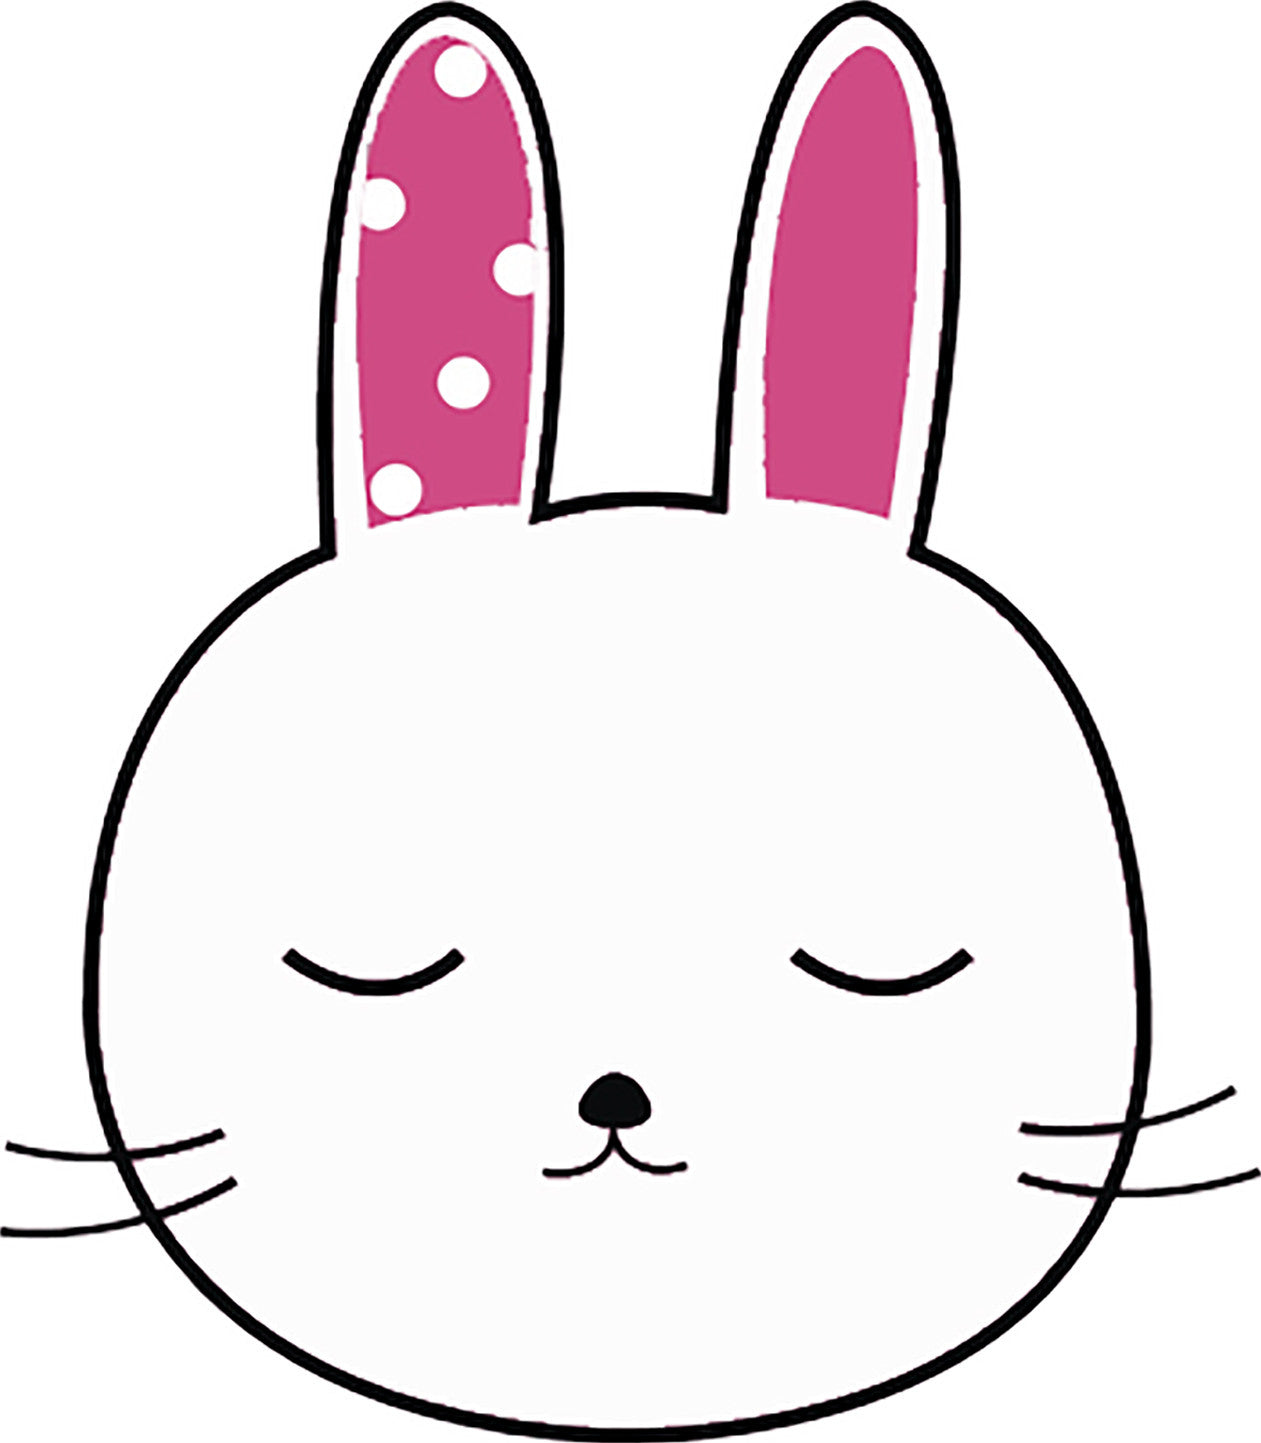 Cute Pretty Kawaii Bunny Rabbit Drawing Cartoon #6 Vinyl Decal Sticker